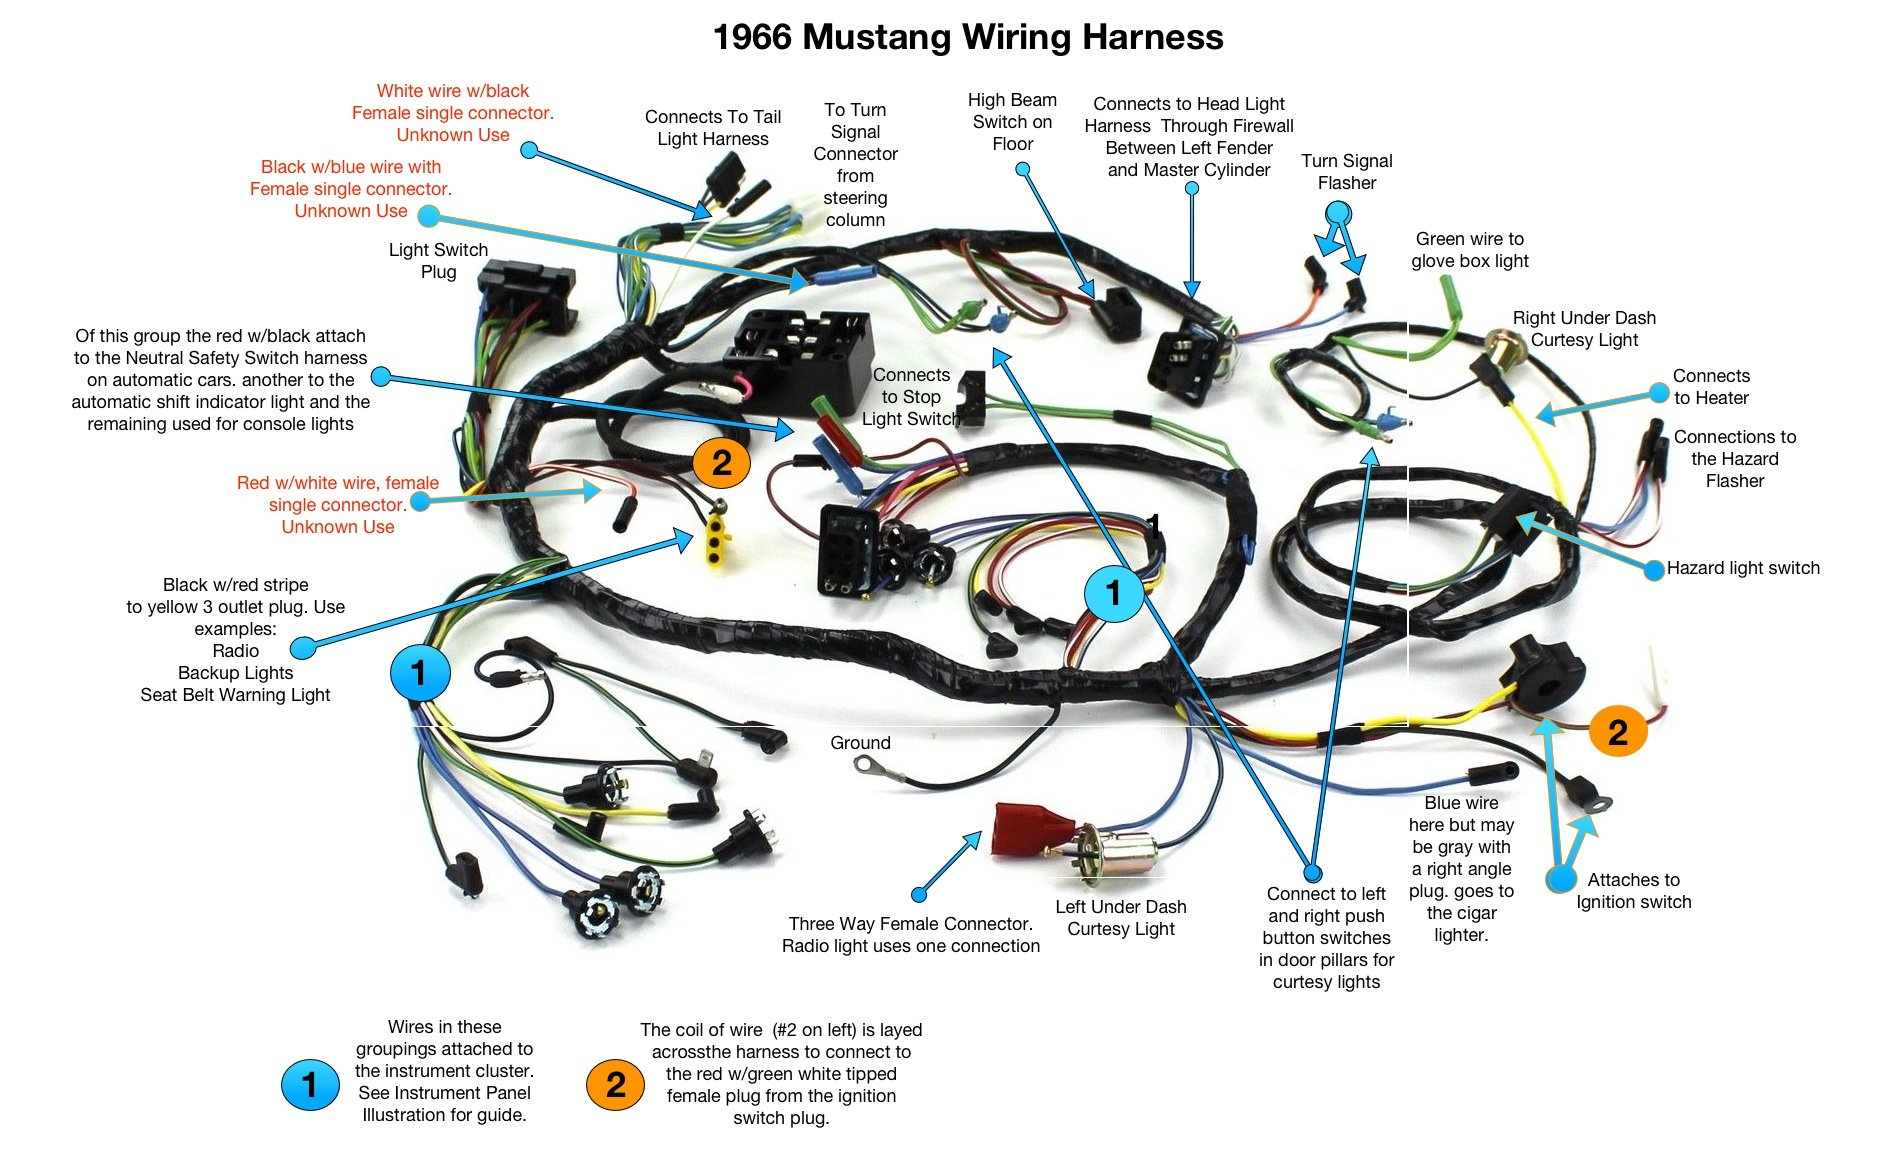 66 mustang wiring harness wiring library 66 wiring harness diagram ford mustang forum mustang fog light wiring harness mustang wiring harness